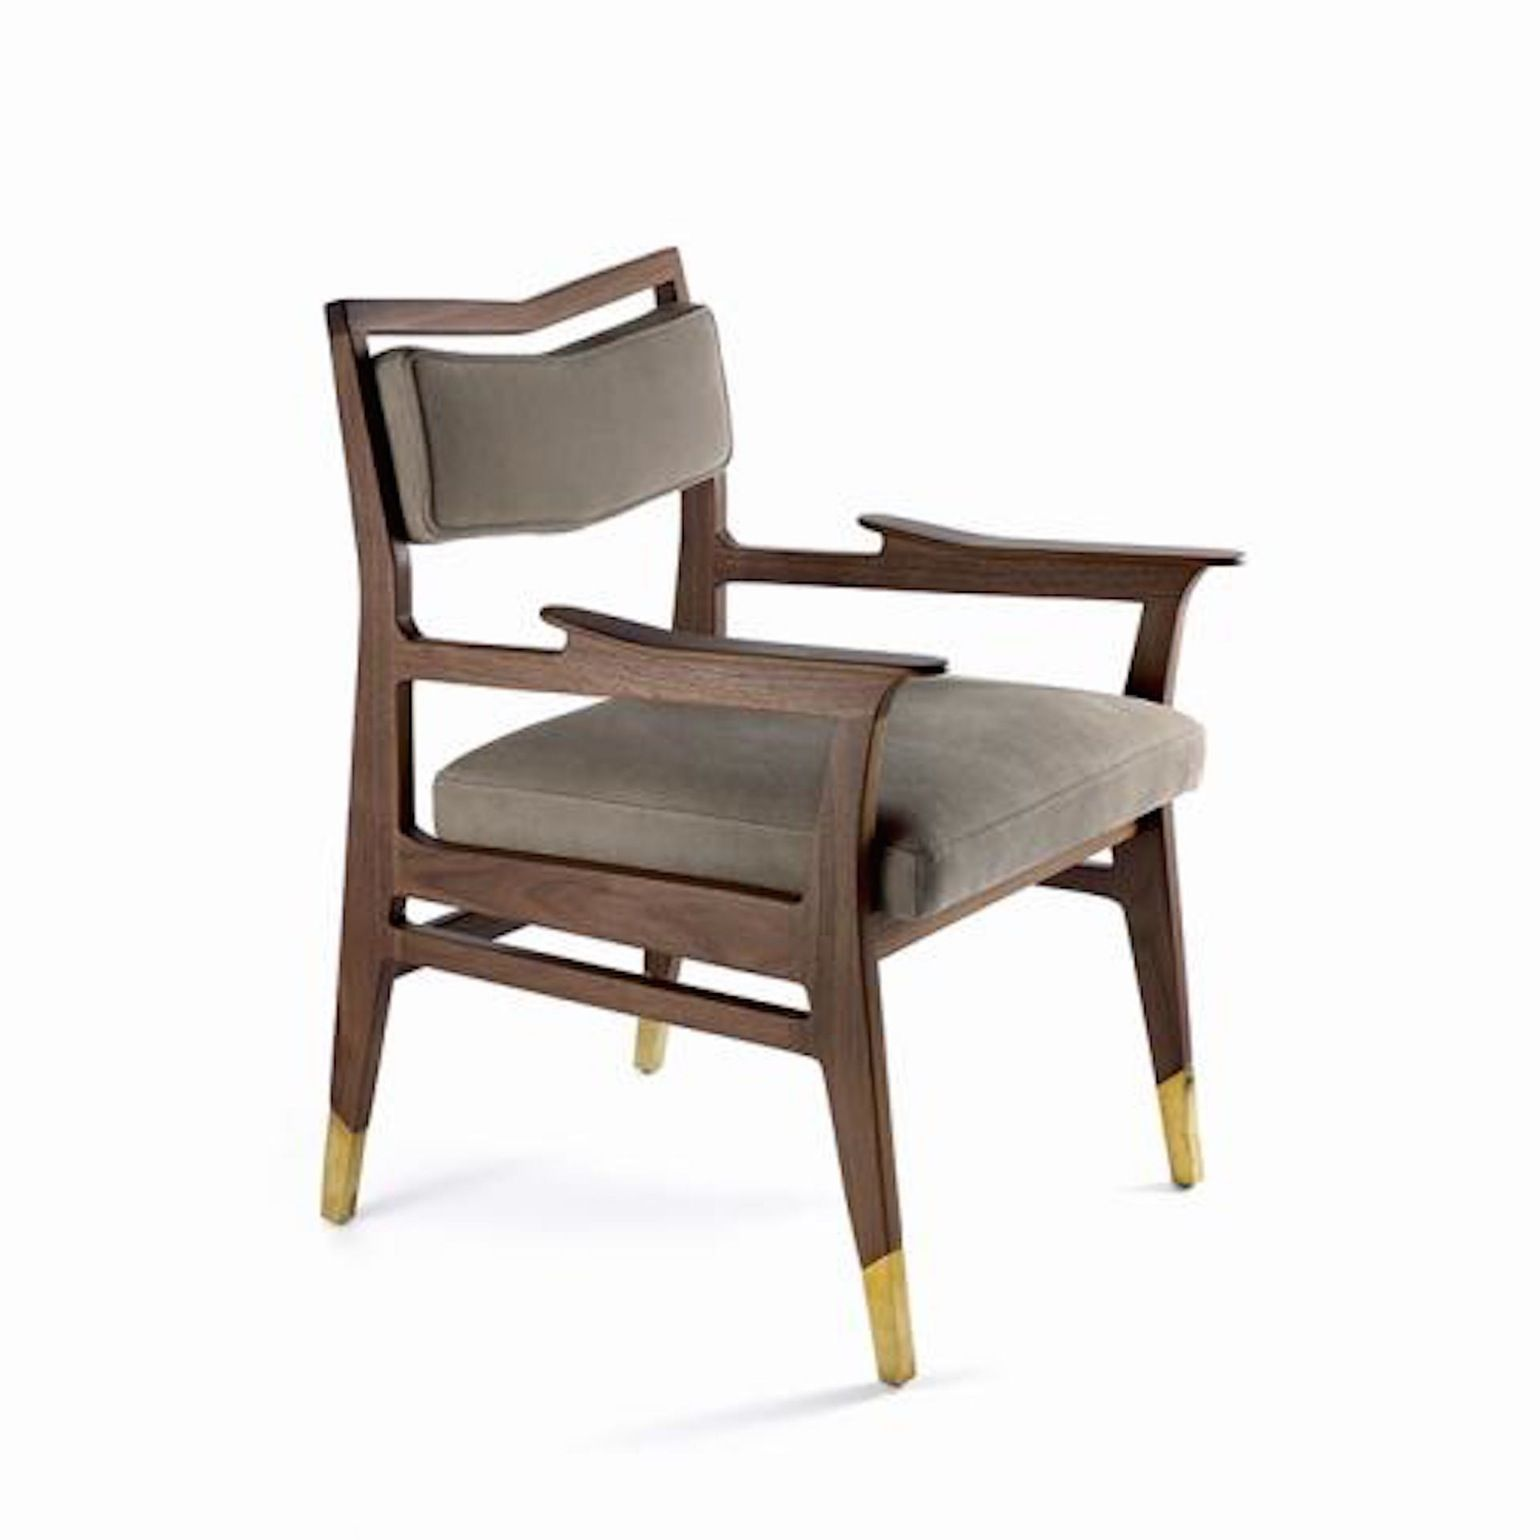 The Bruno Arm Dining Chair Traditional Transitional MidCentury Modern Contemporary Organic Upholstery Fabric Wood Room By Studio Van Den Akker